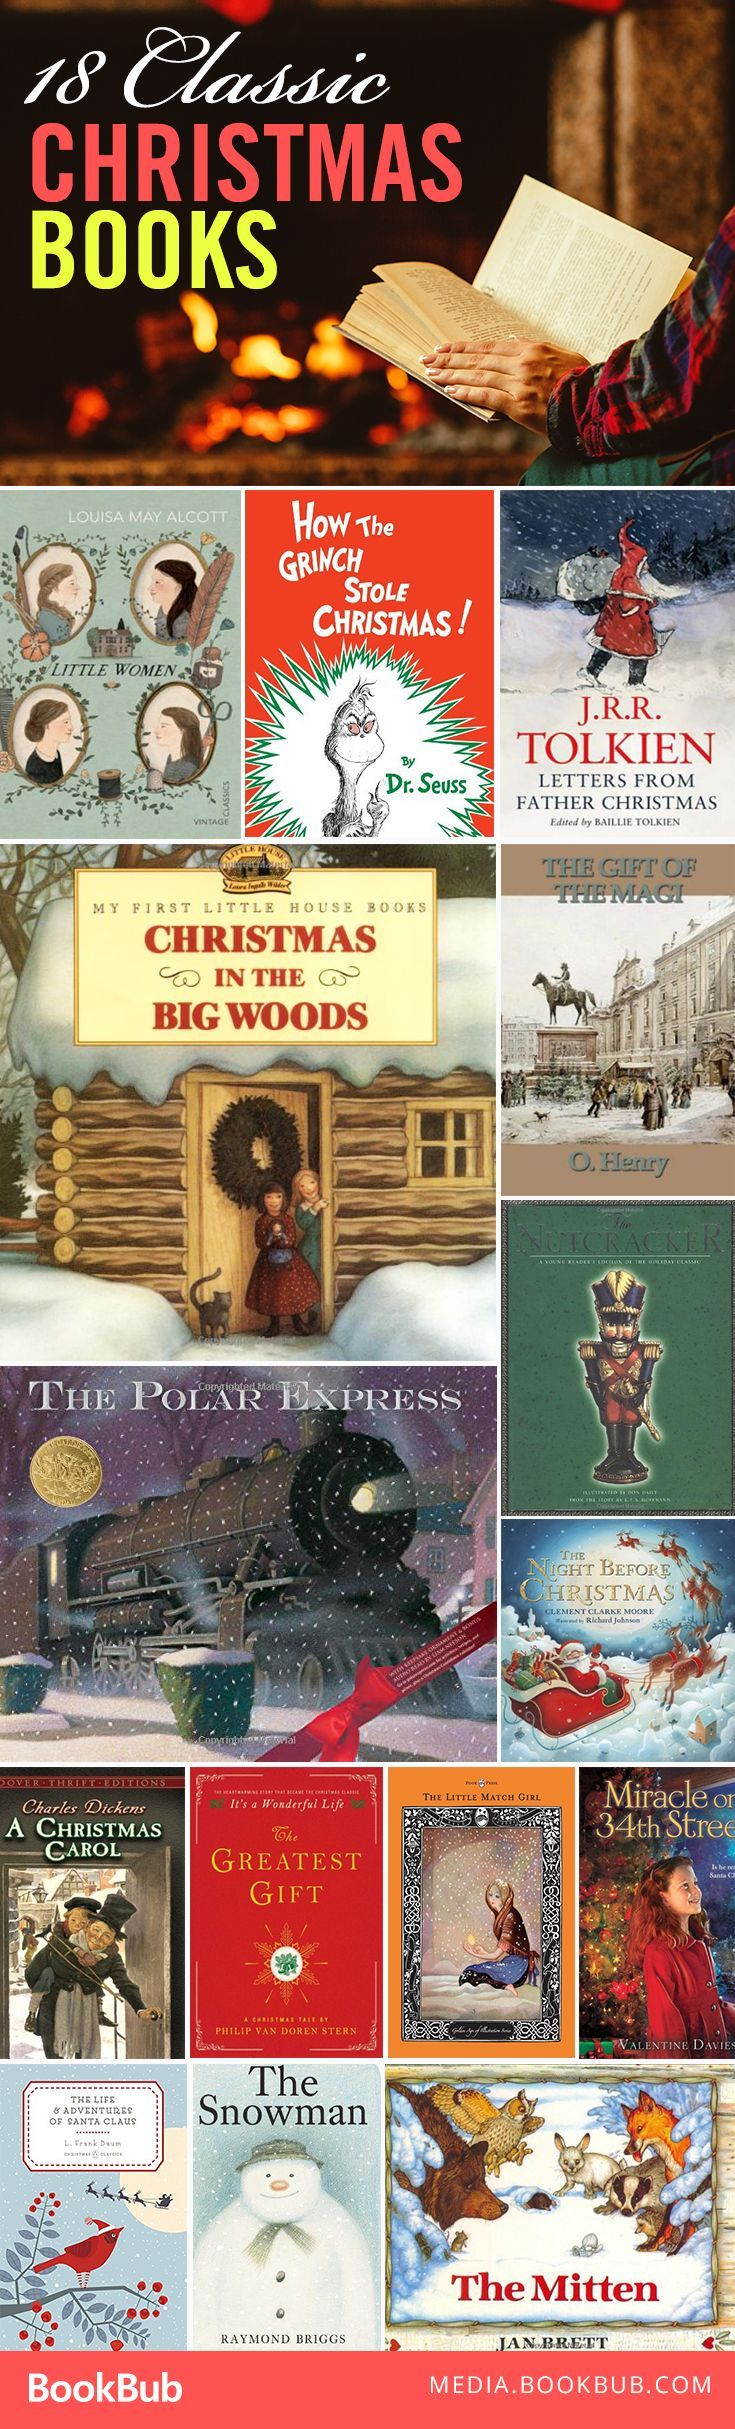 18 classic christmas stories to cozy up and read this holiday season 18xmas - Classic Christmas Stories